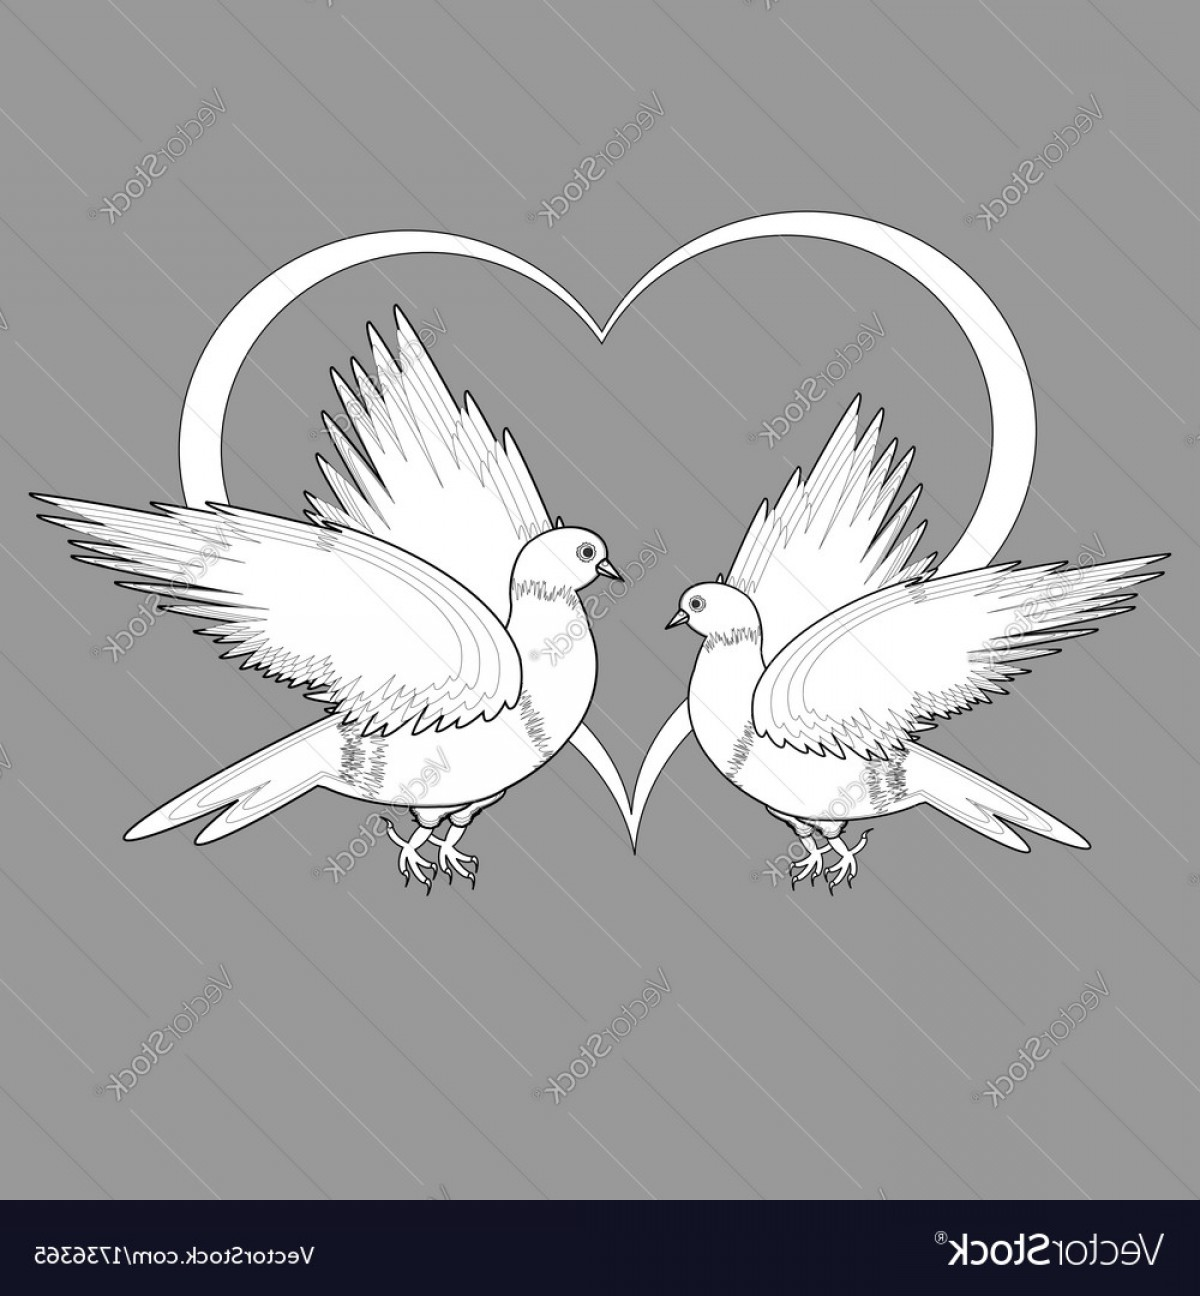 Vector Wedding Doves 2: A Monochrome Sketch Of Two Doves And A Heart Vector